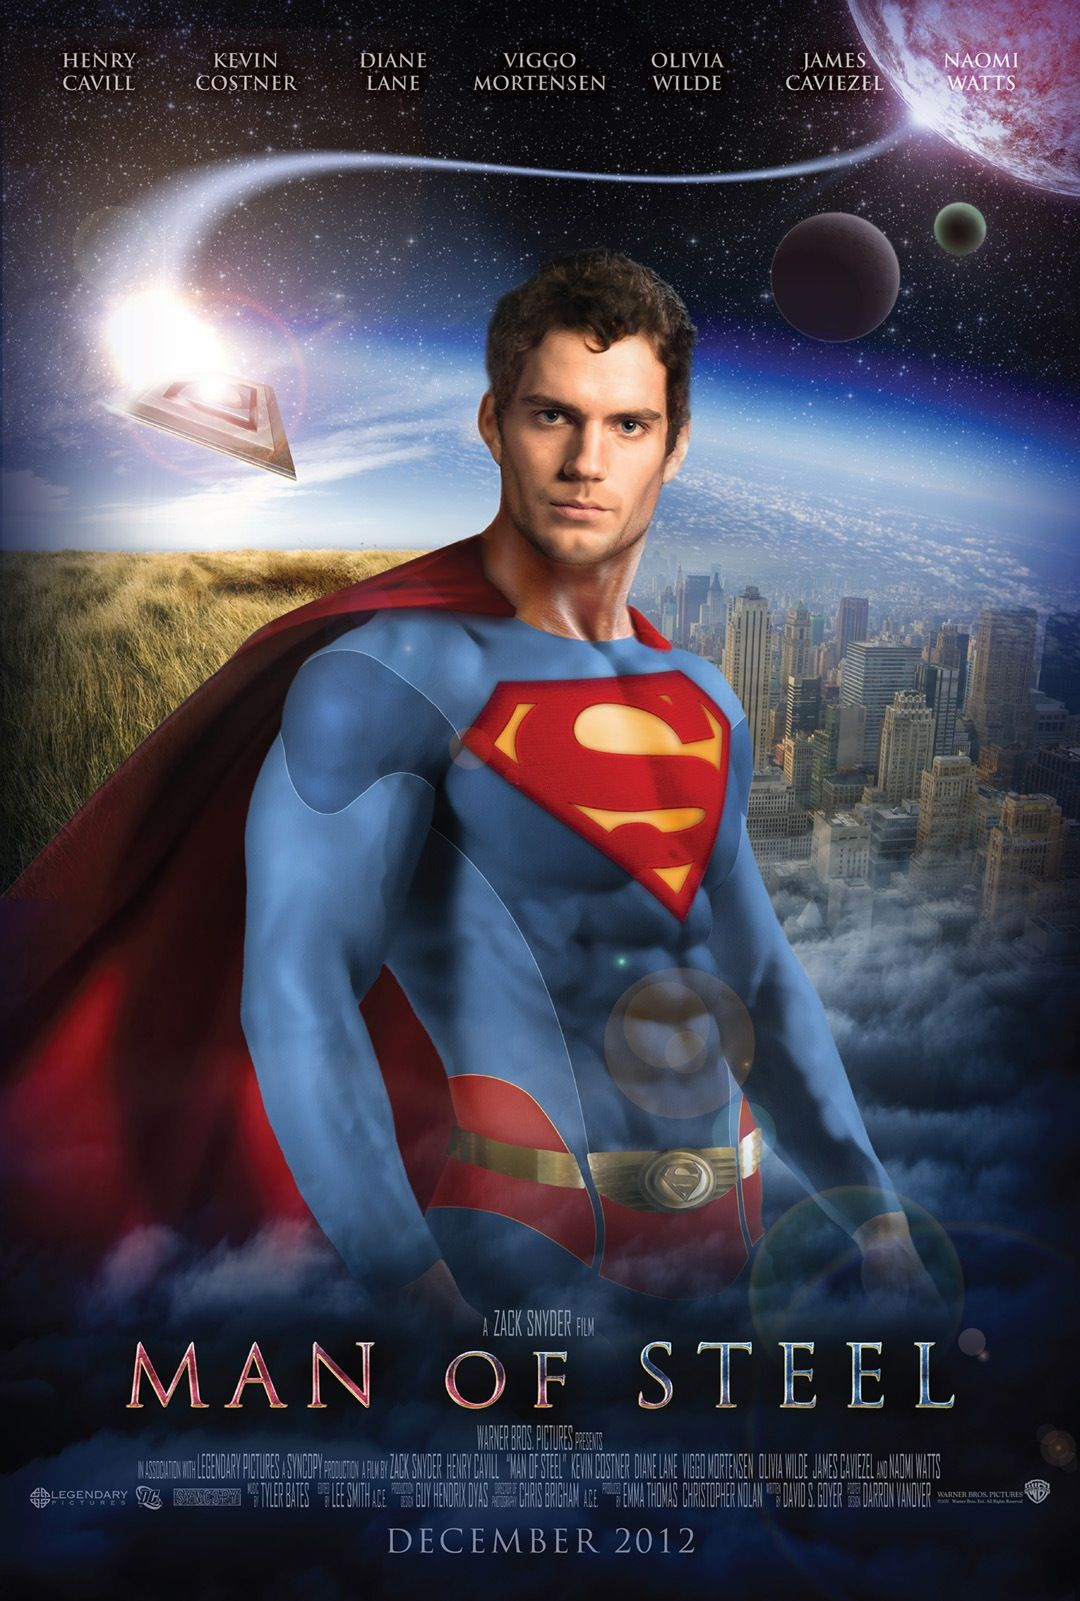 Artist Fan Art Interpretation Of The Yet To Be Released Promoted Superman Man Steel Movie Poster Starring Henry Cavill As